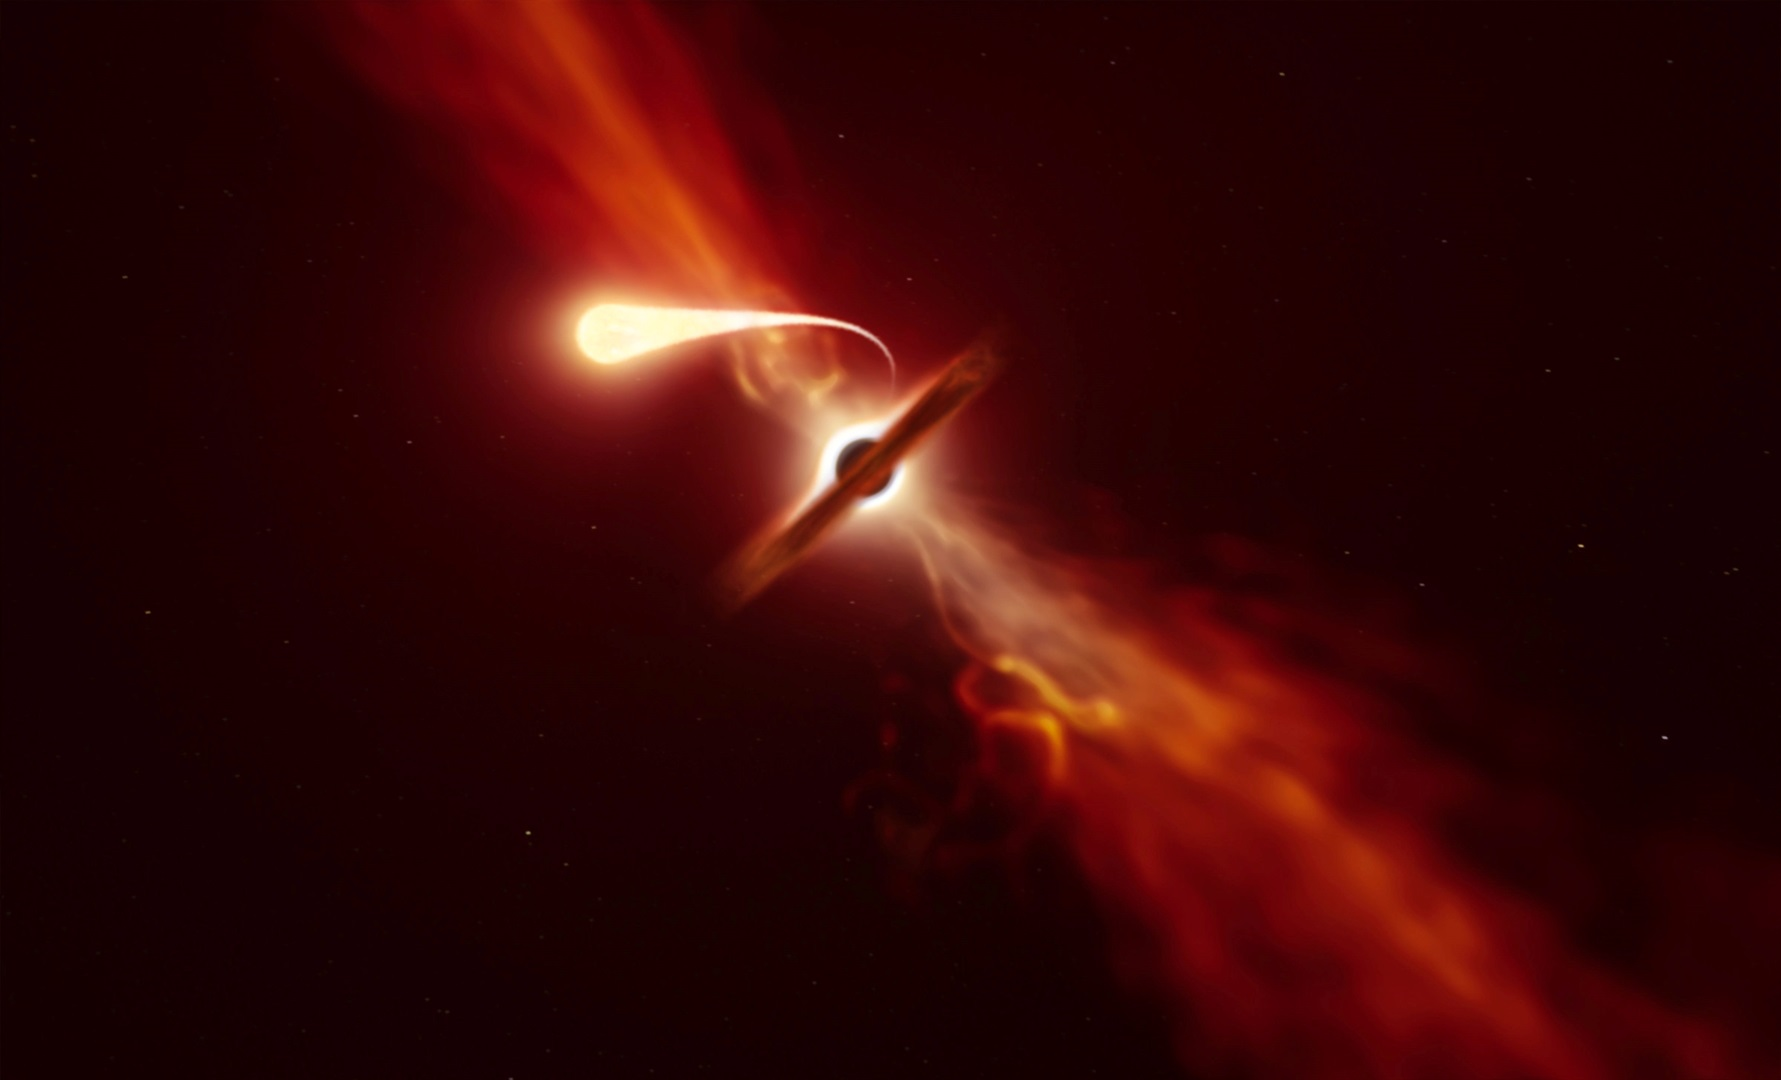 'Spaghettification' of star shredded by black hole witnessed by astronomers